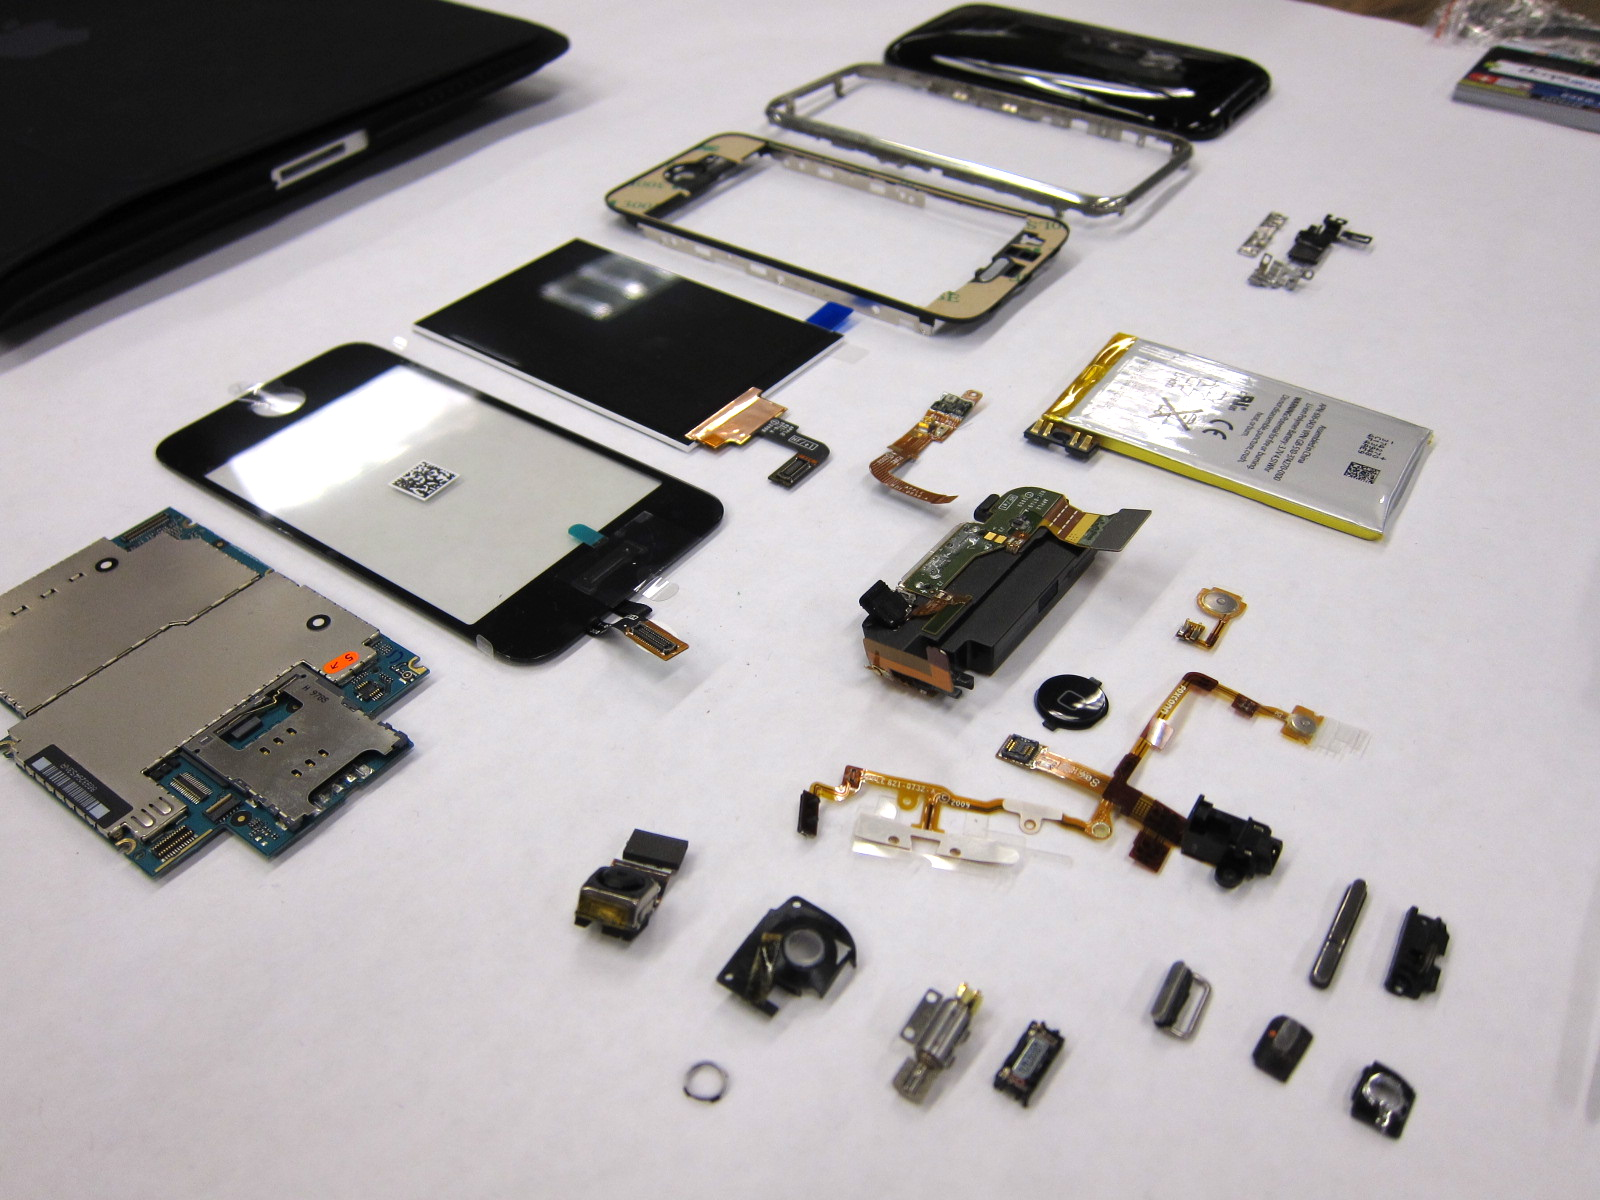 iPhone disassembled | Flickr - Photo Sharing!